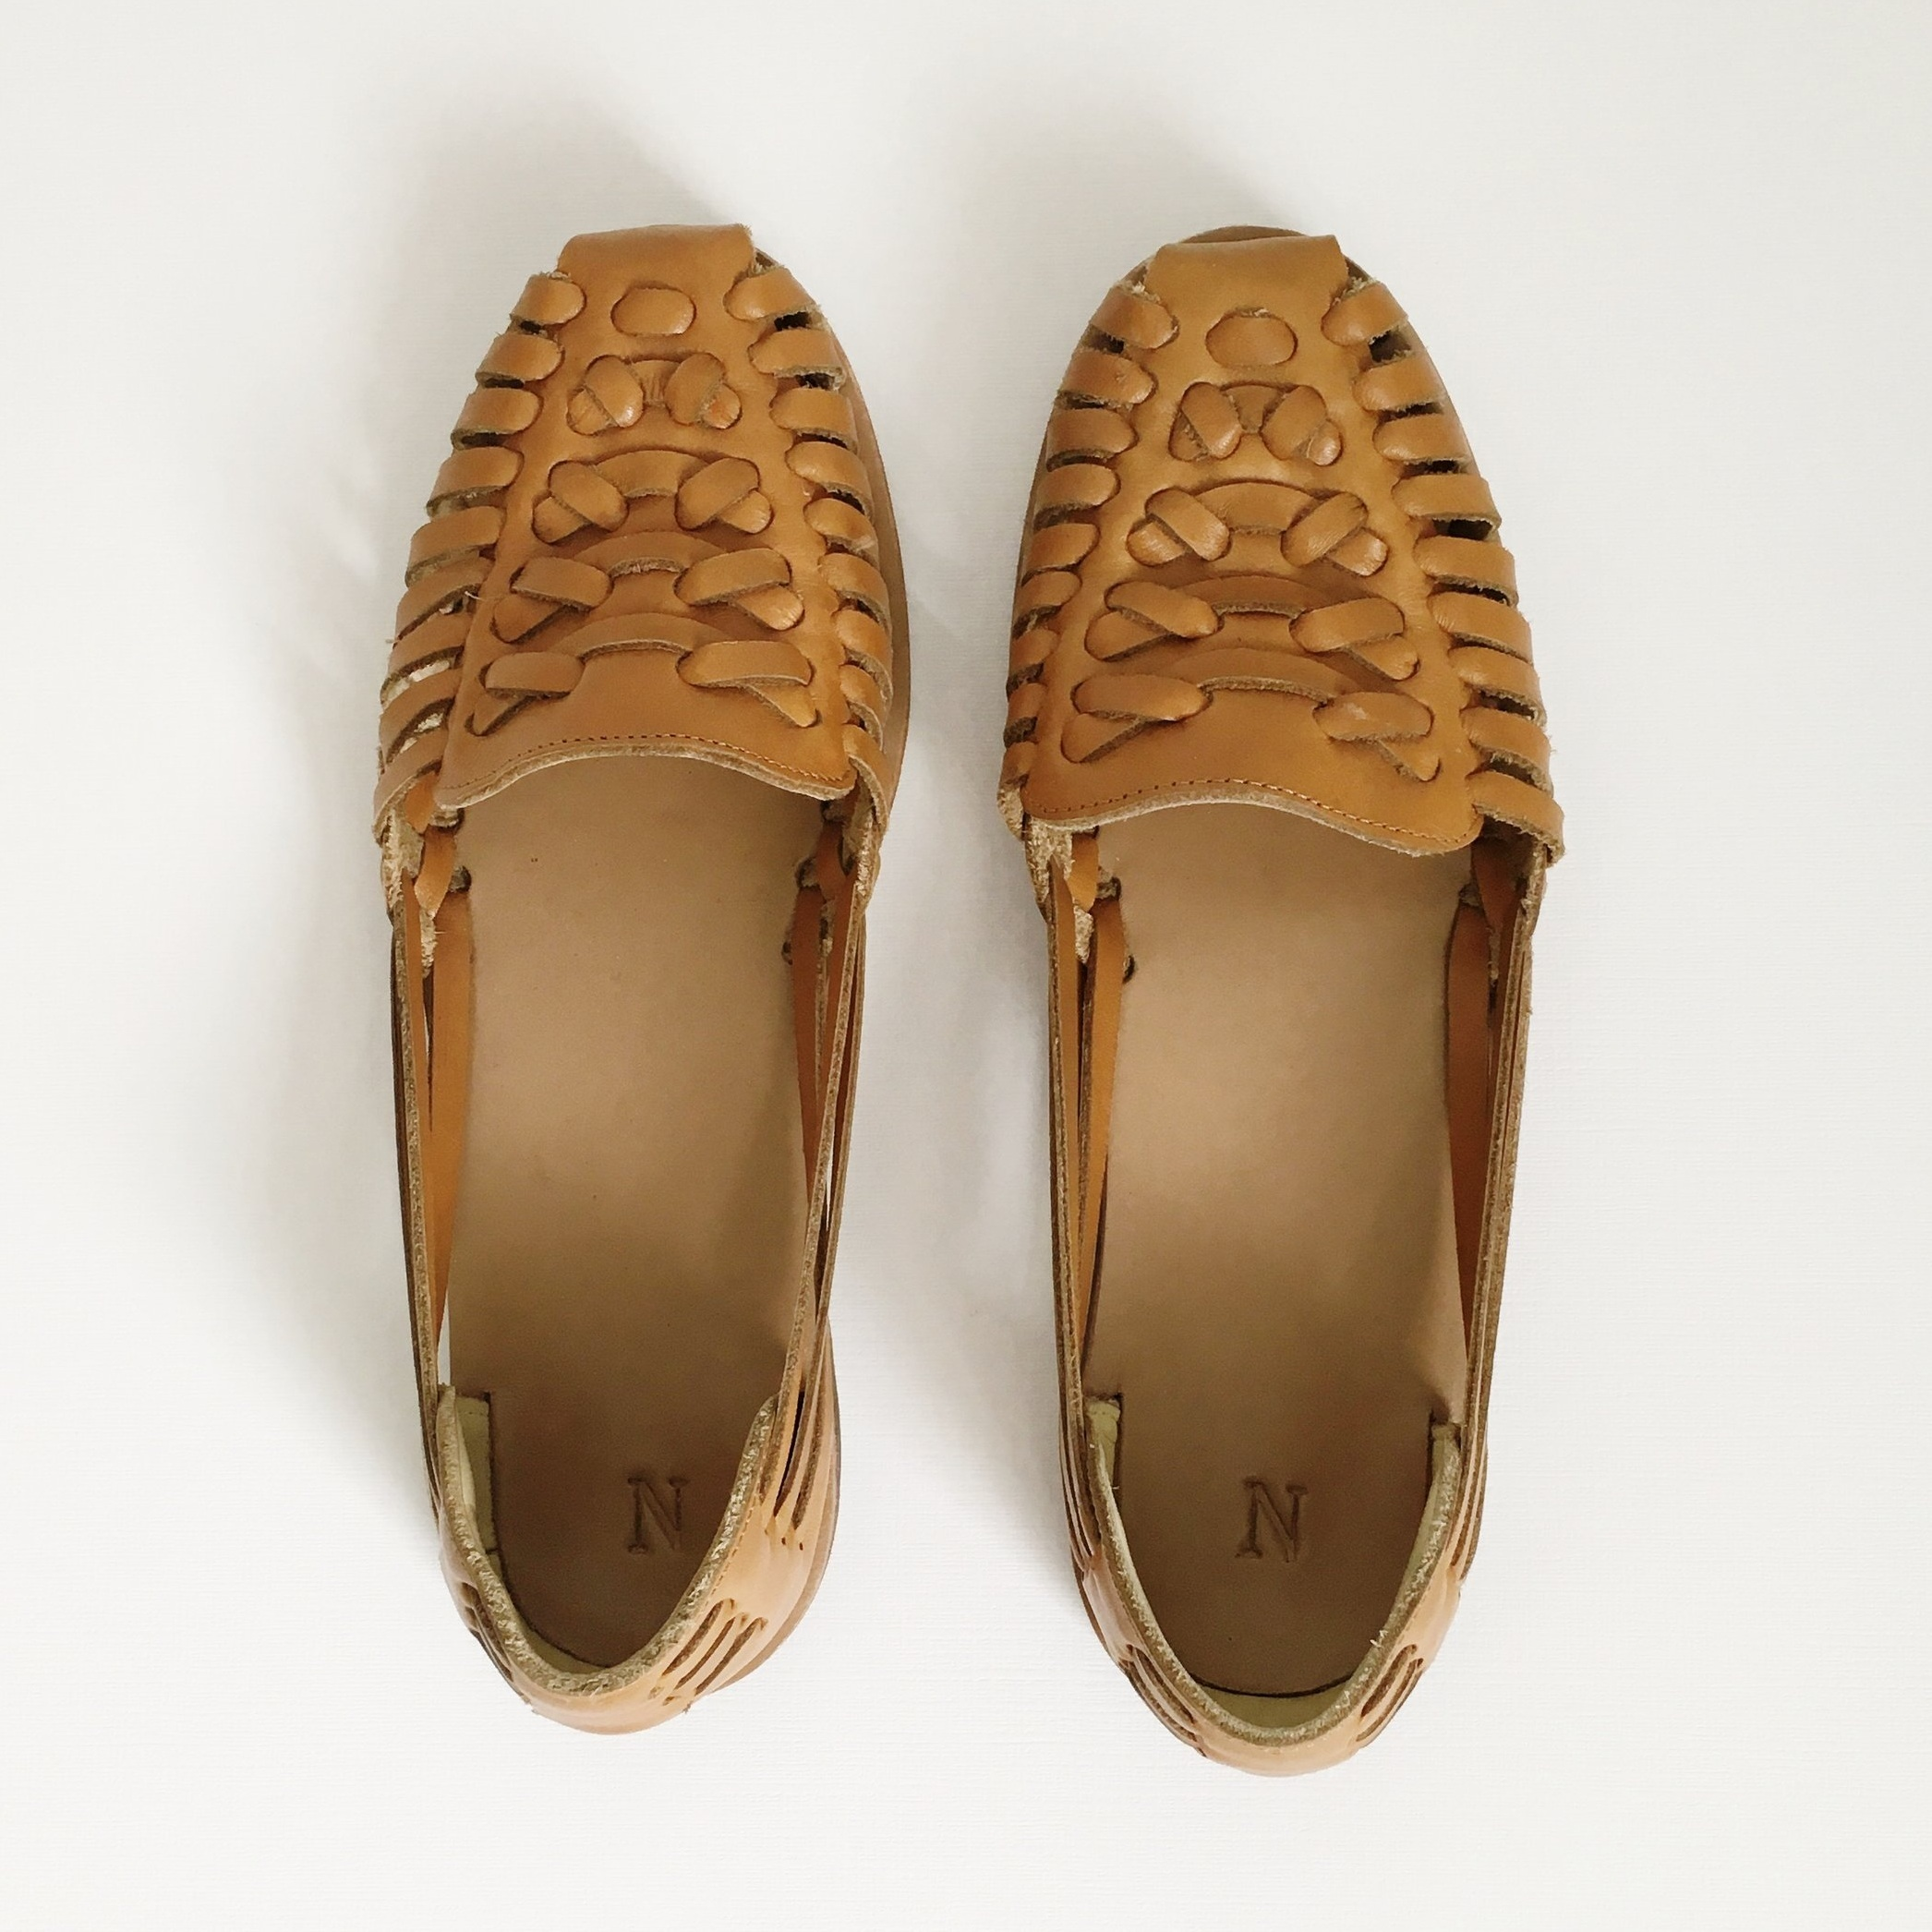 Huarache Sandals; sustainable & ethical shoe brand